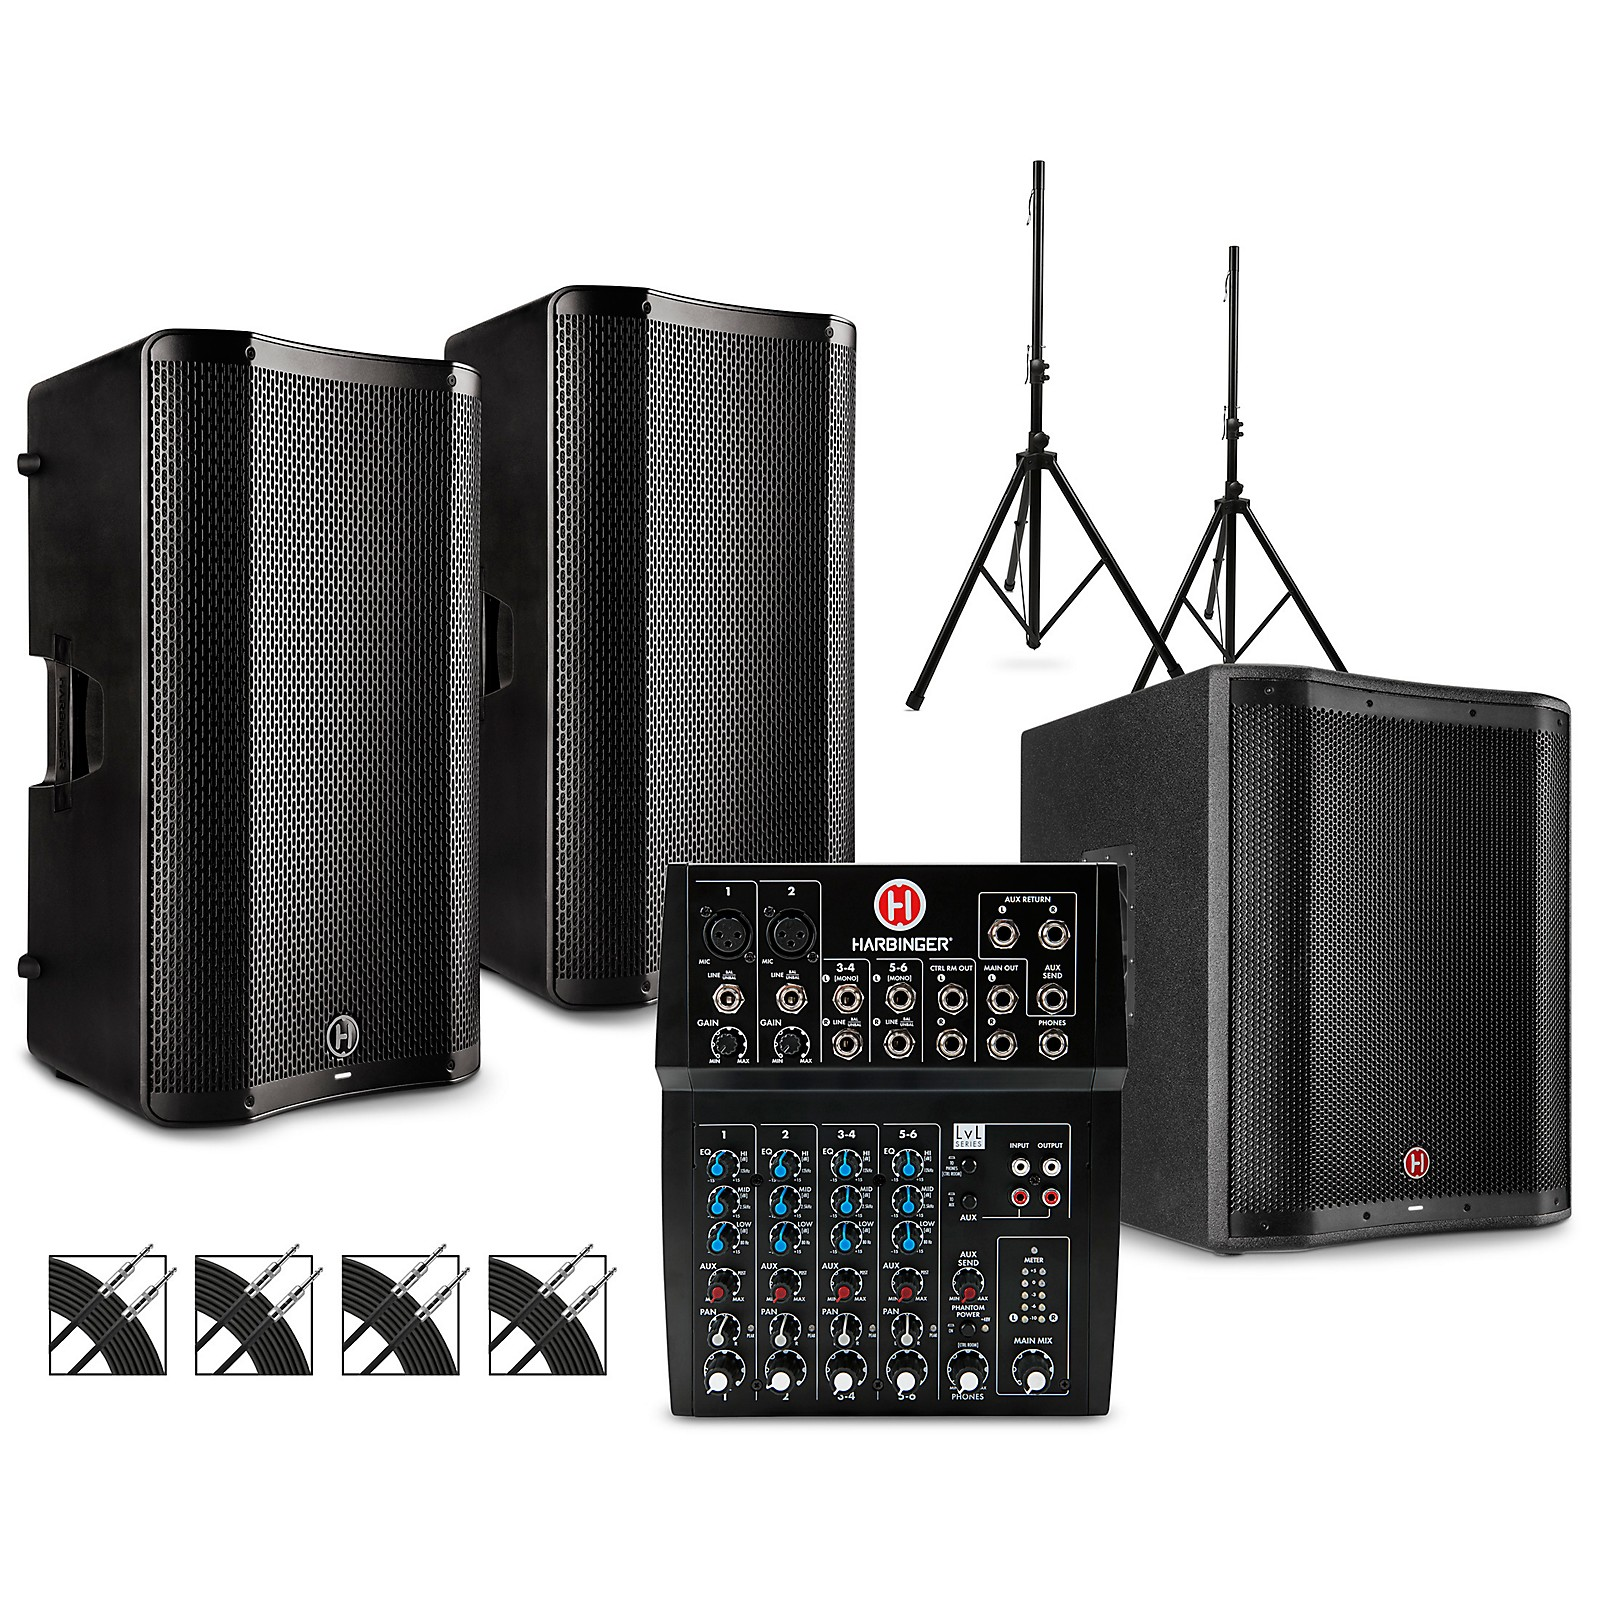 Harbinger L802 Mixer Package with VARI V4000 Series Speakers, V2318S Subwoofer, Stands and Cables